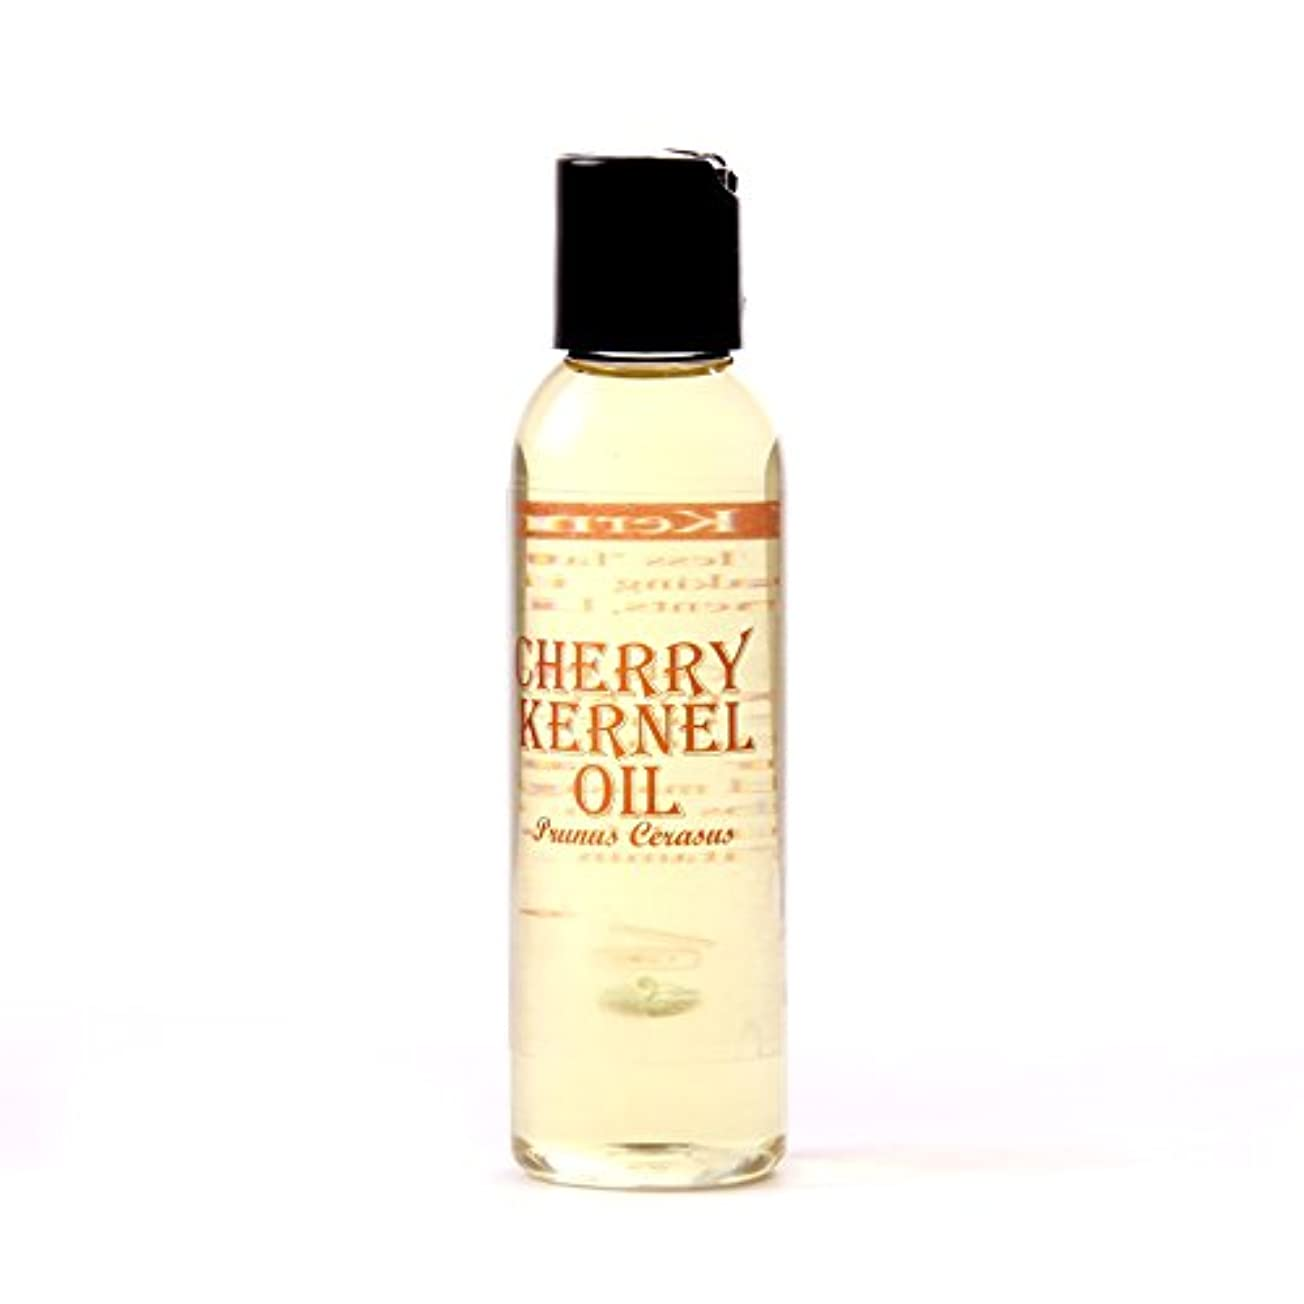 Mystic Moments | Cherry Kernel Carrier Oil - 125ml - 100% Pure